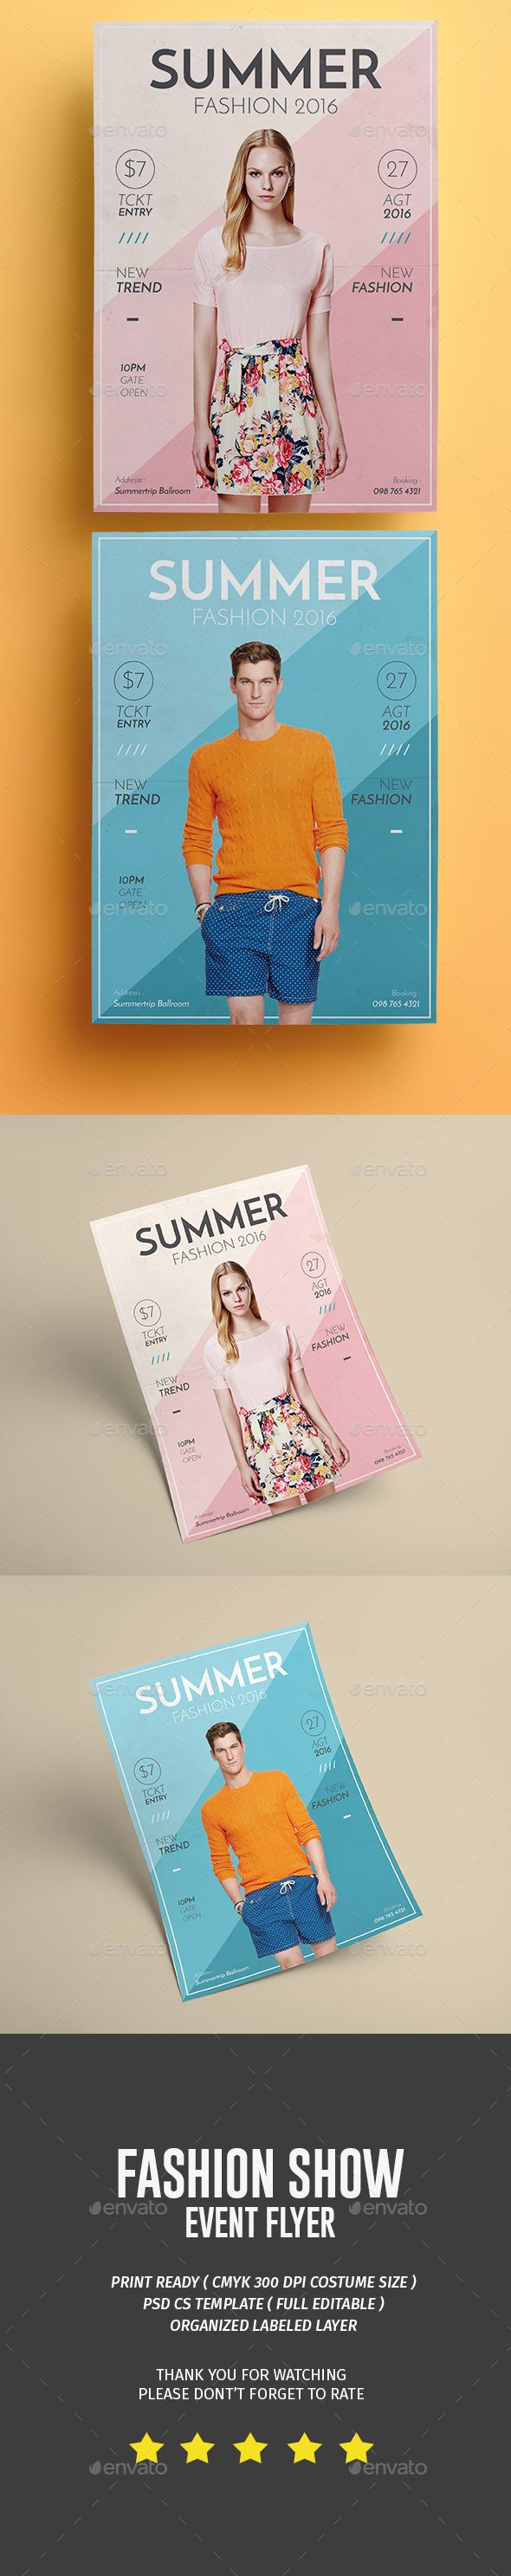 Summer Fashion PSD Flyer  Template • Only available here ➝ http://graphicriver.net/item/summer-fashion-flyer/16814048?ref=pxcr